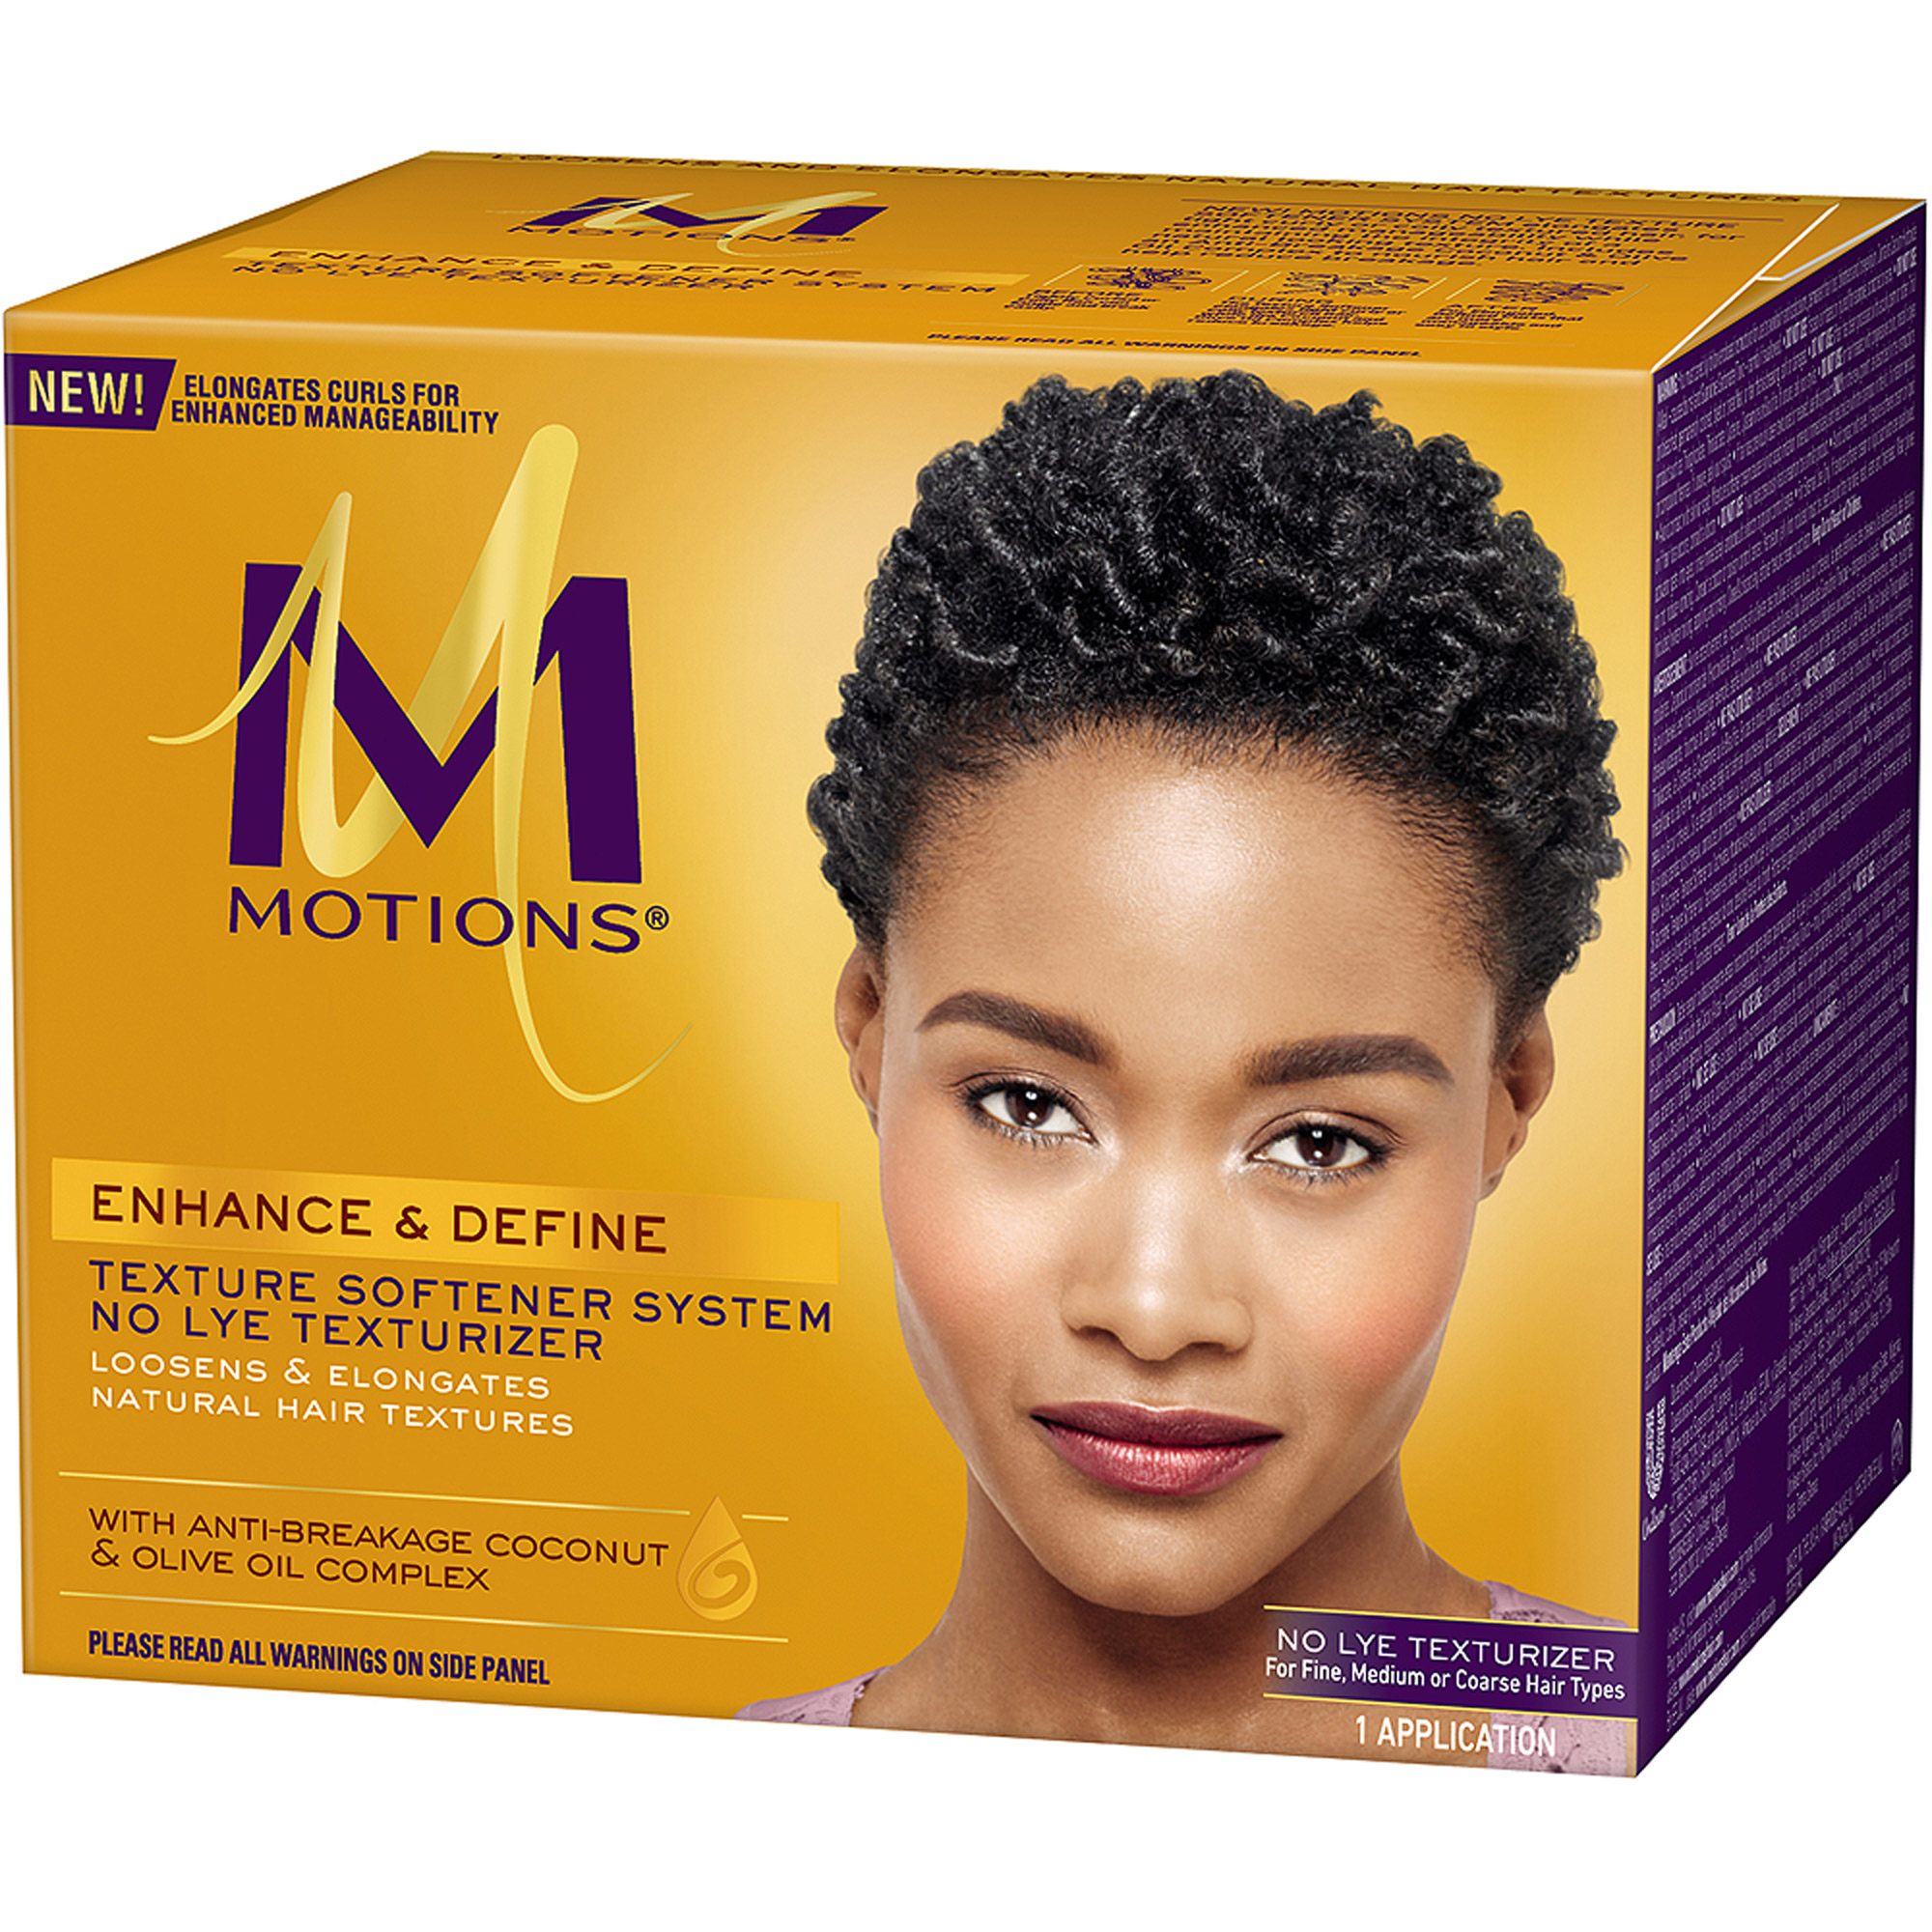 Motions Enhance and Define No Lye Texturizer Texture Softener System, Kit